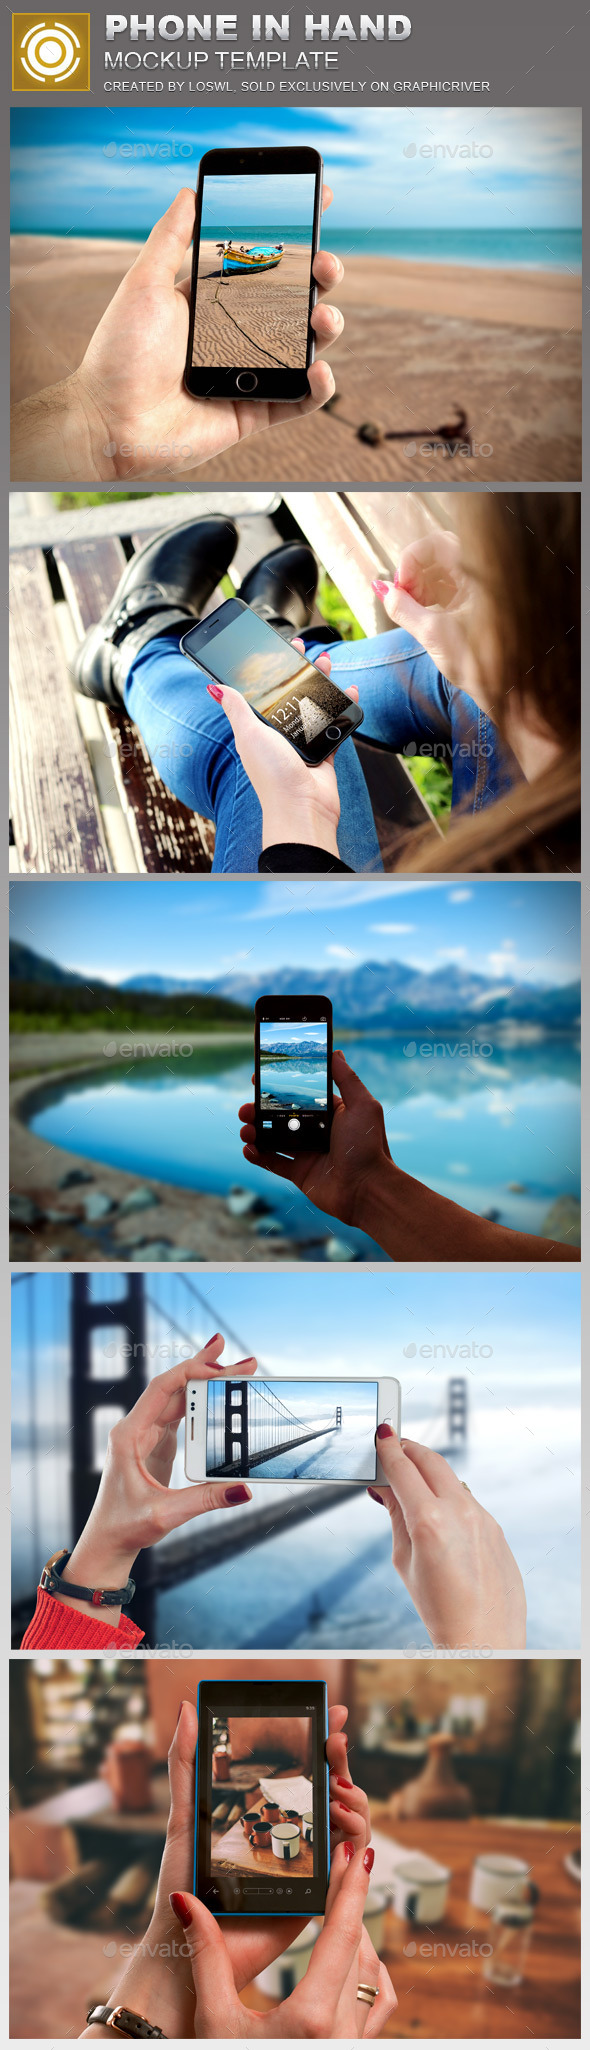 Phone in Hand Mockup Template - Mobile Displays